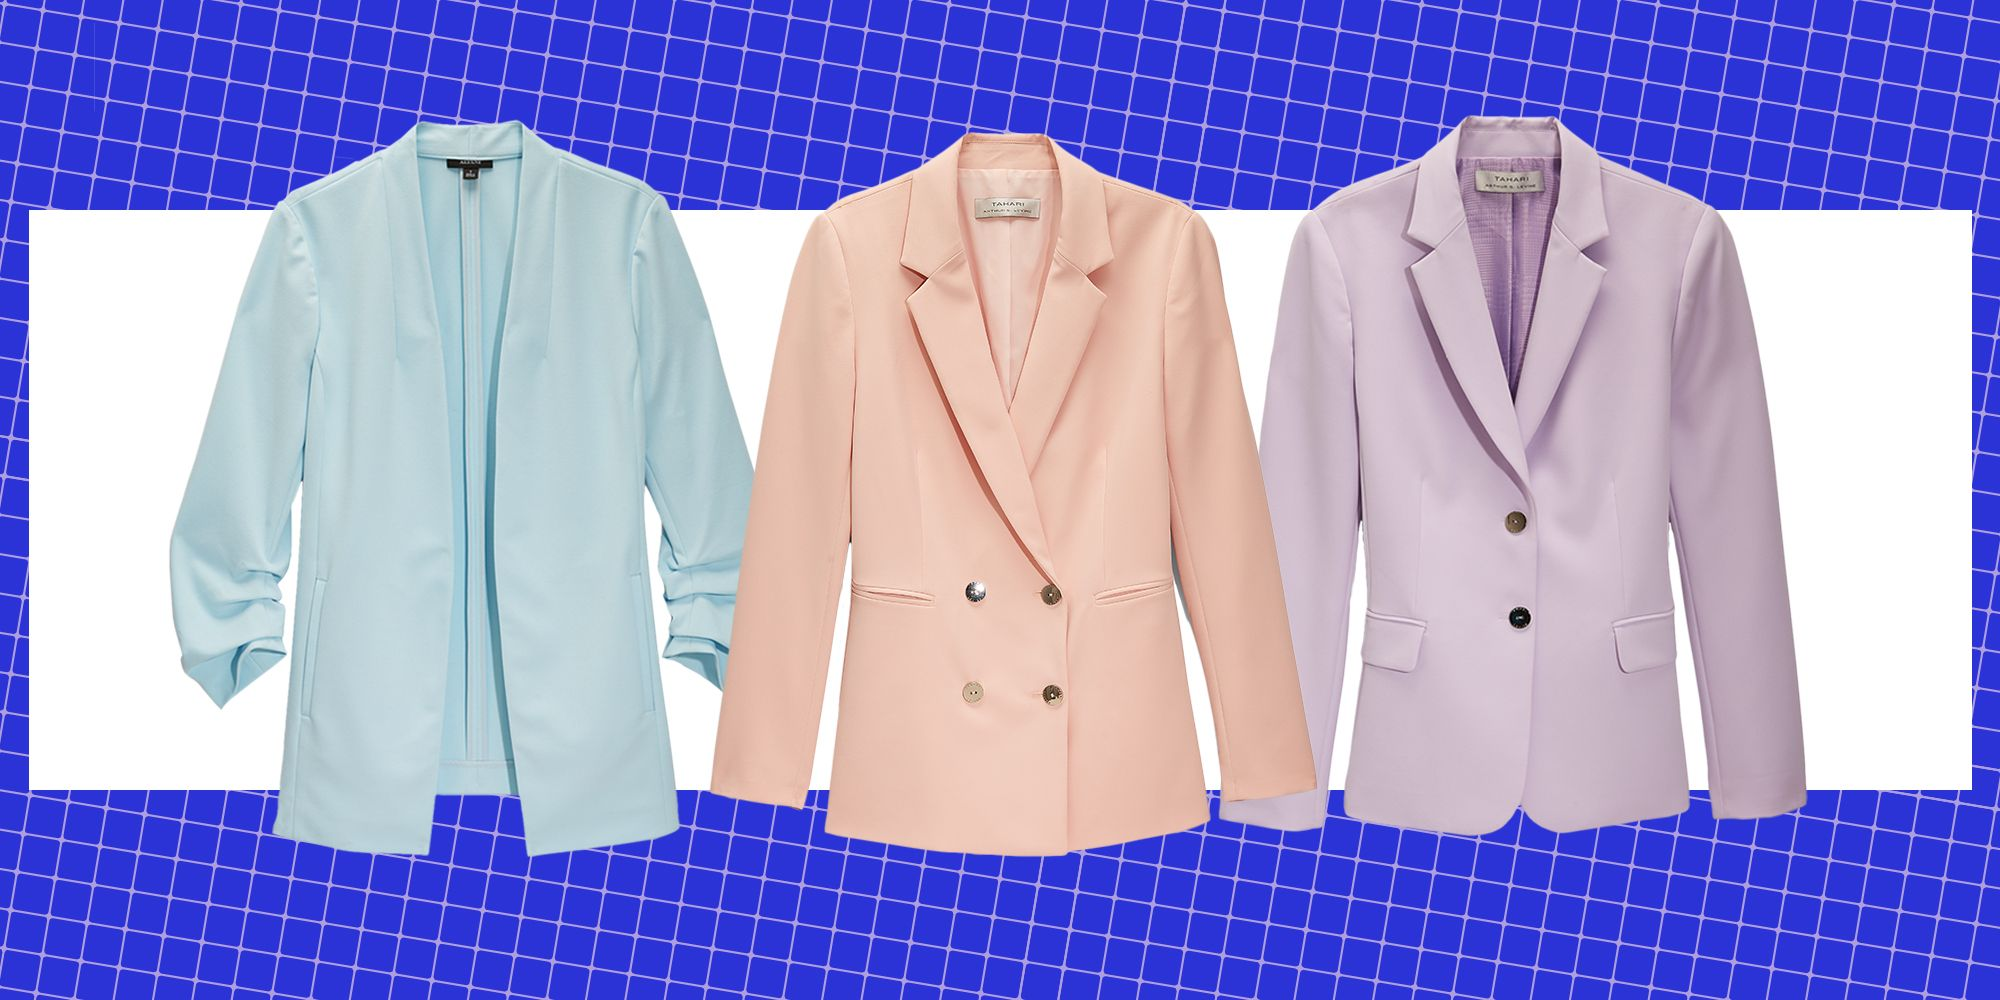 How to Style a Pastel Suit for 3 Different Occasions